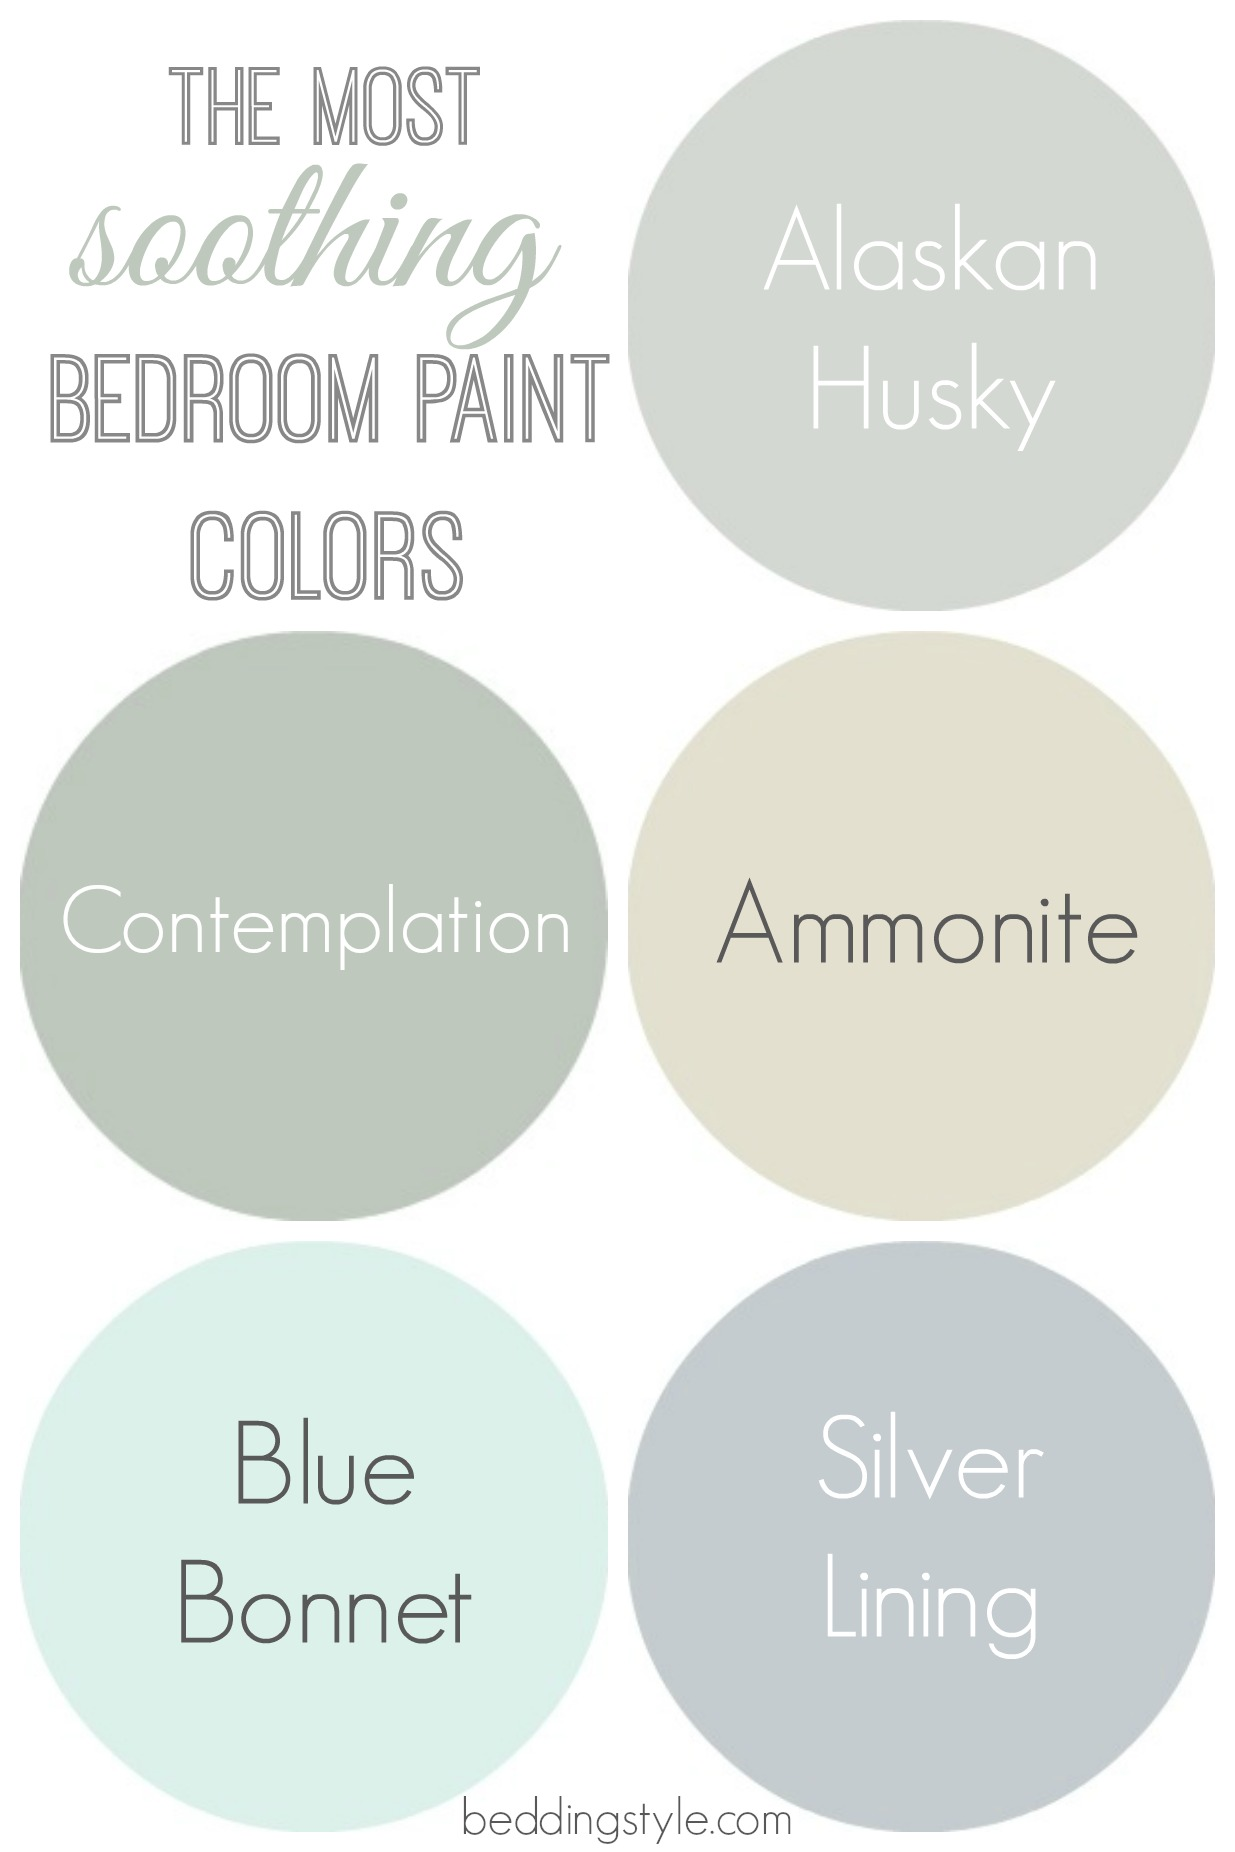 Soothing Colors For Bedroom How To Decide On Bedroom Paint Colors From Beddingstyle